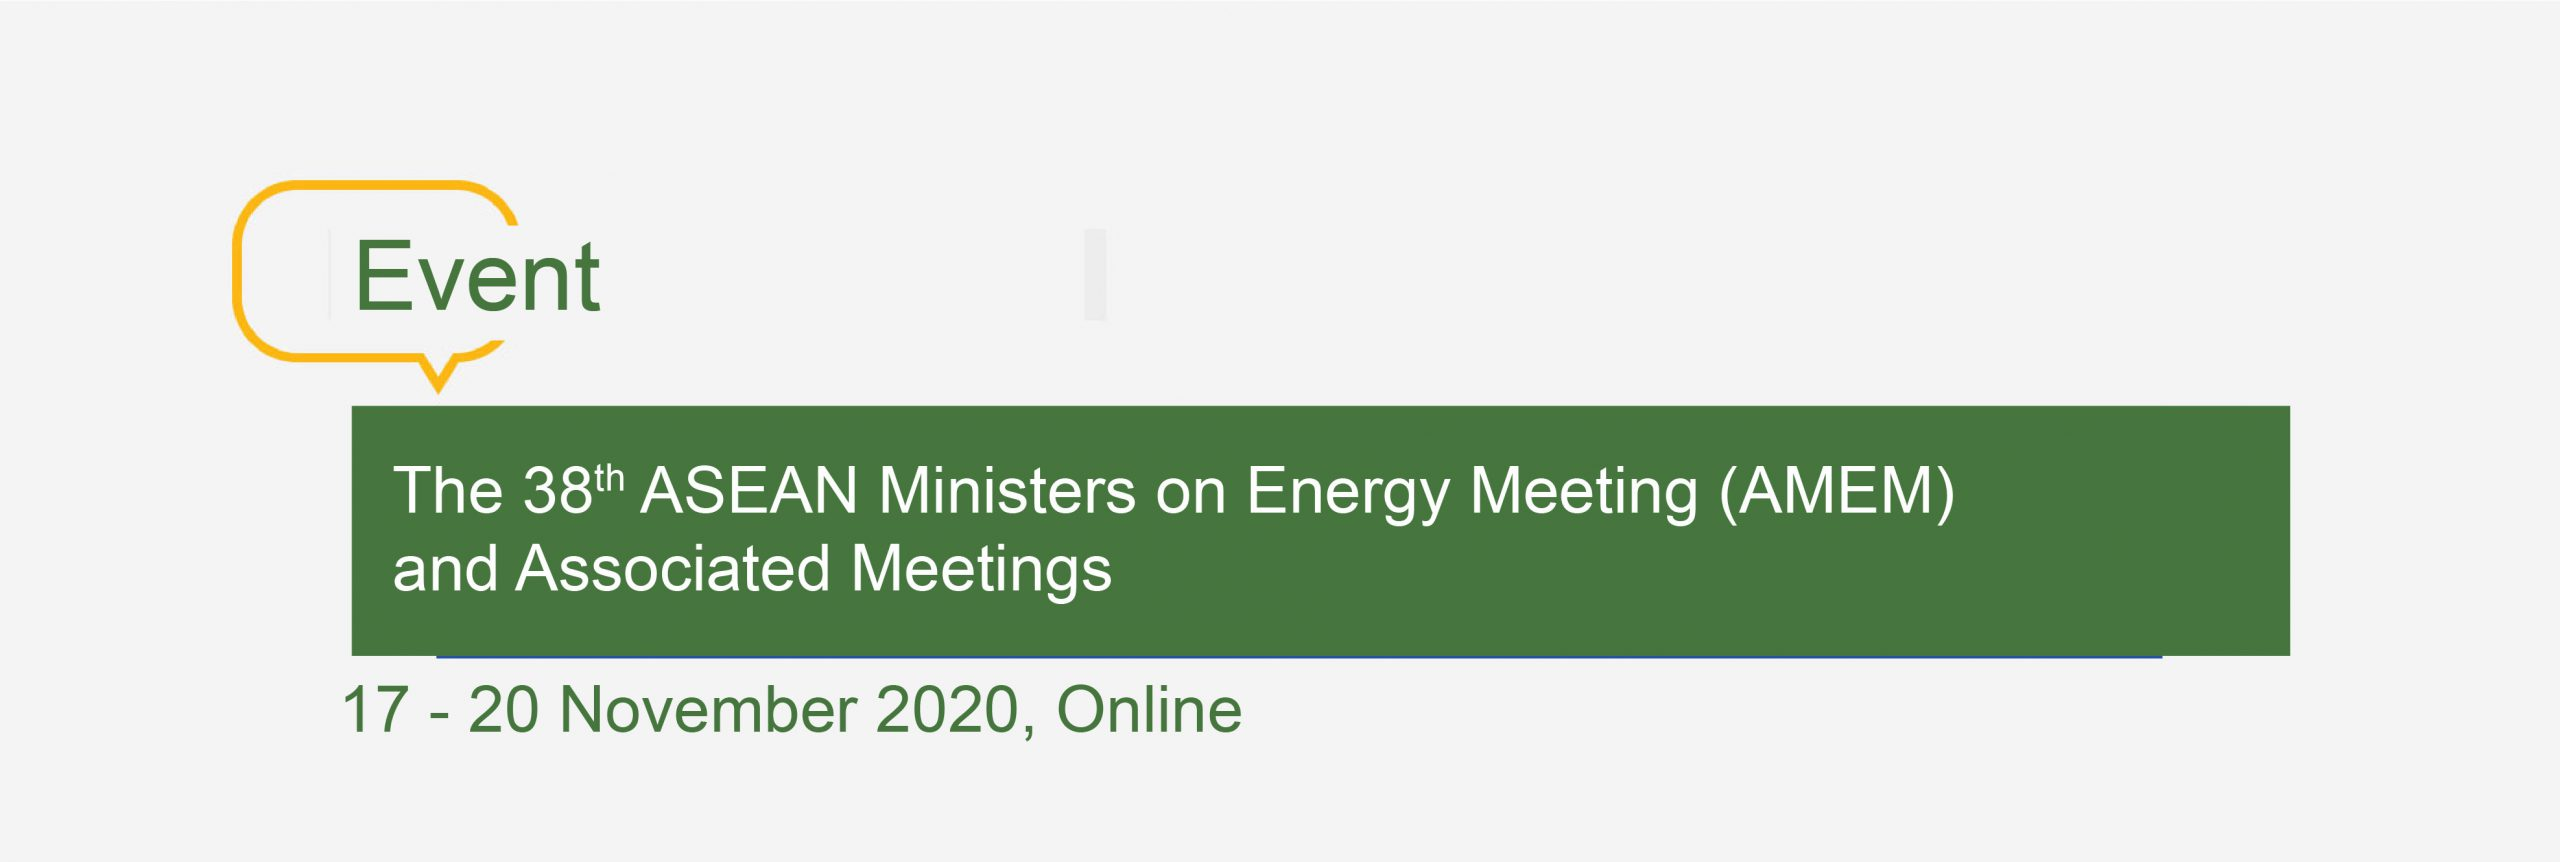 The 38th ASEAN Ministers on Energy Meeting (AMEM) and Associated Meetings